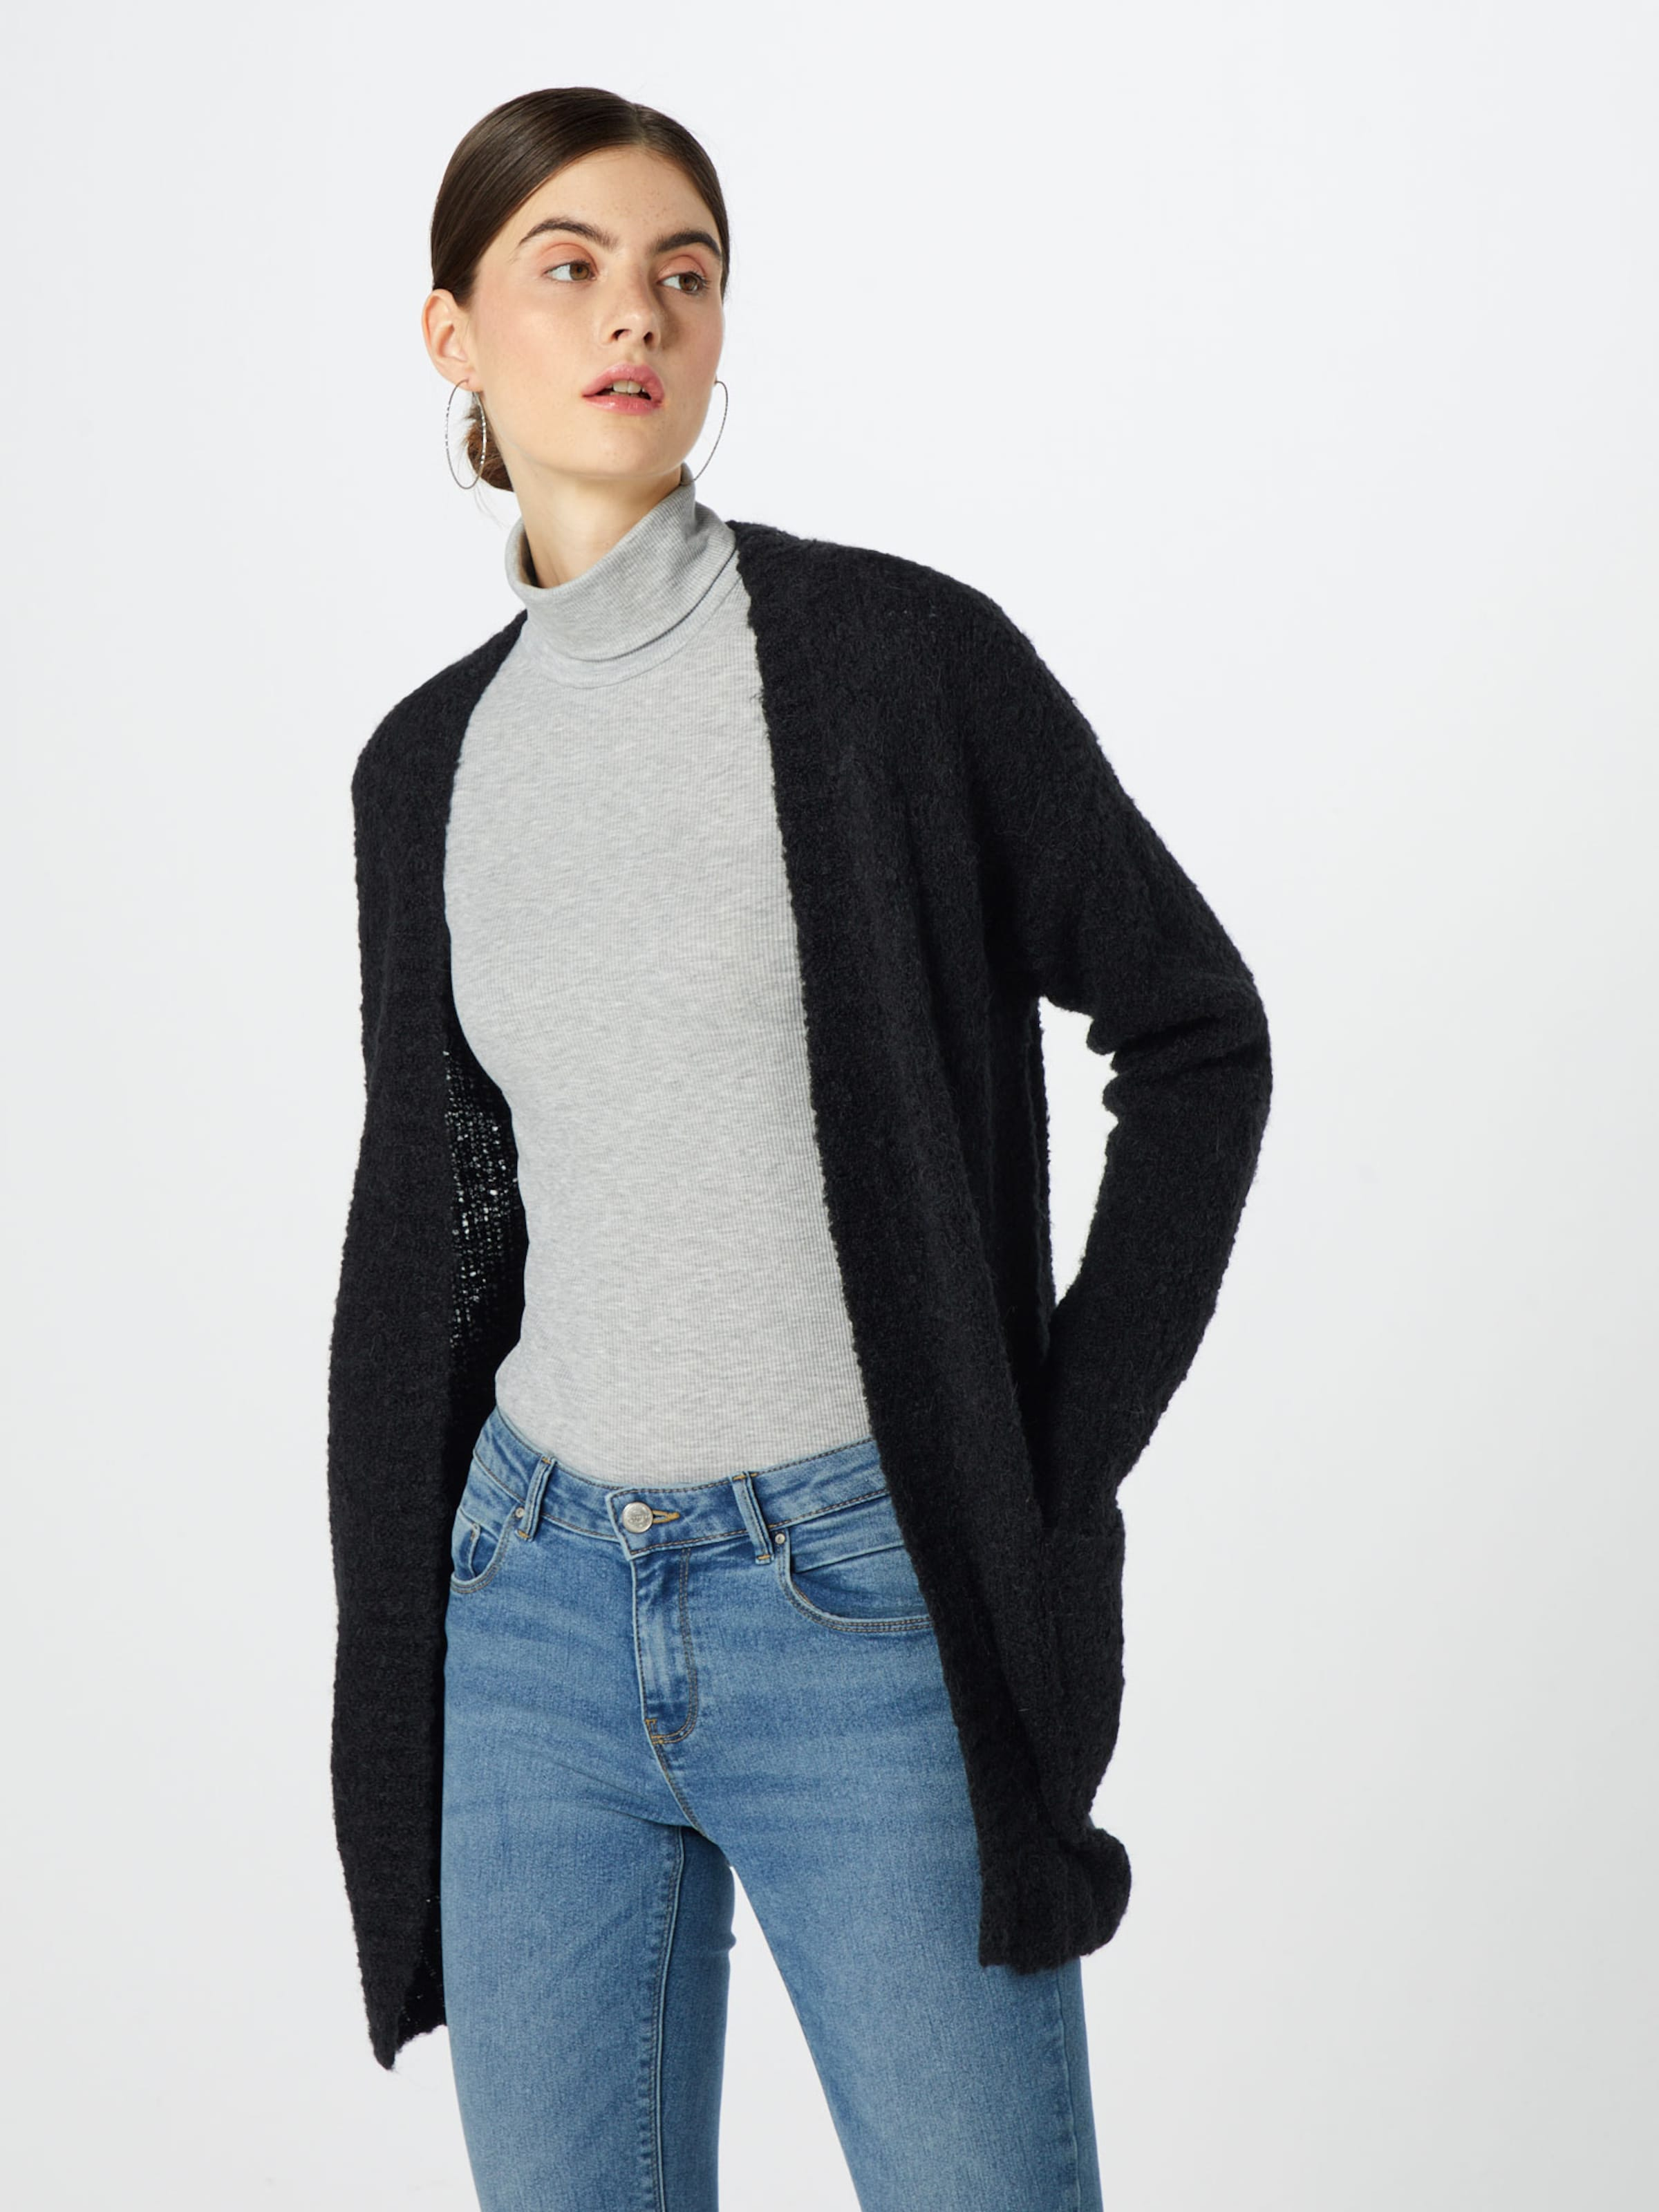 En Noir Cardigan Noir Pieces Noir Pieces En Cardigan Cardigan En Pieces N0PwO8nkX